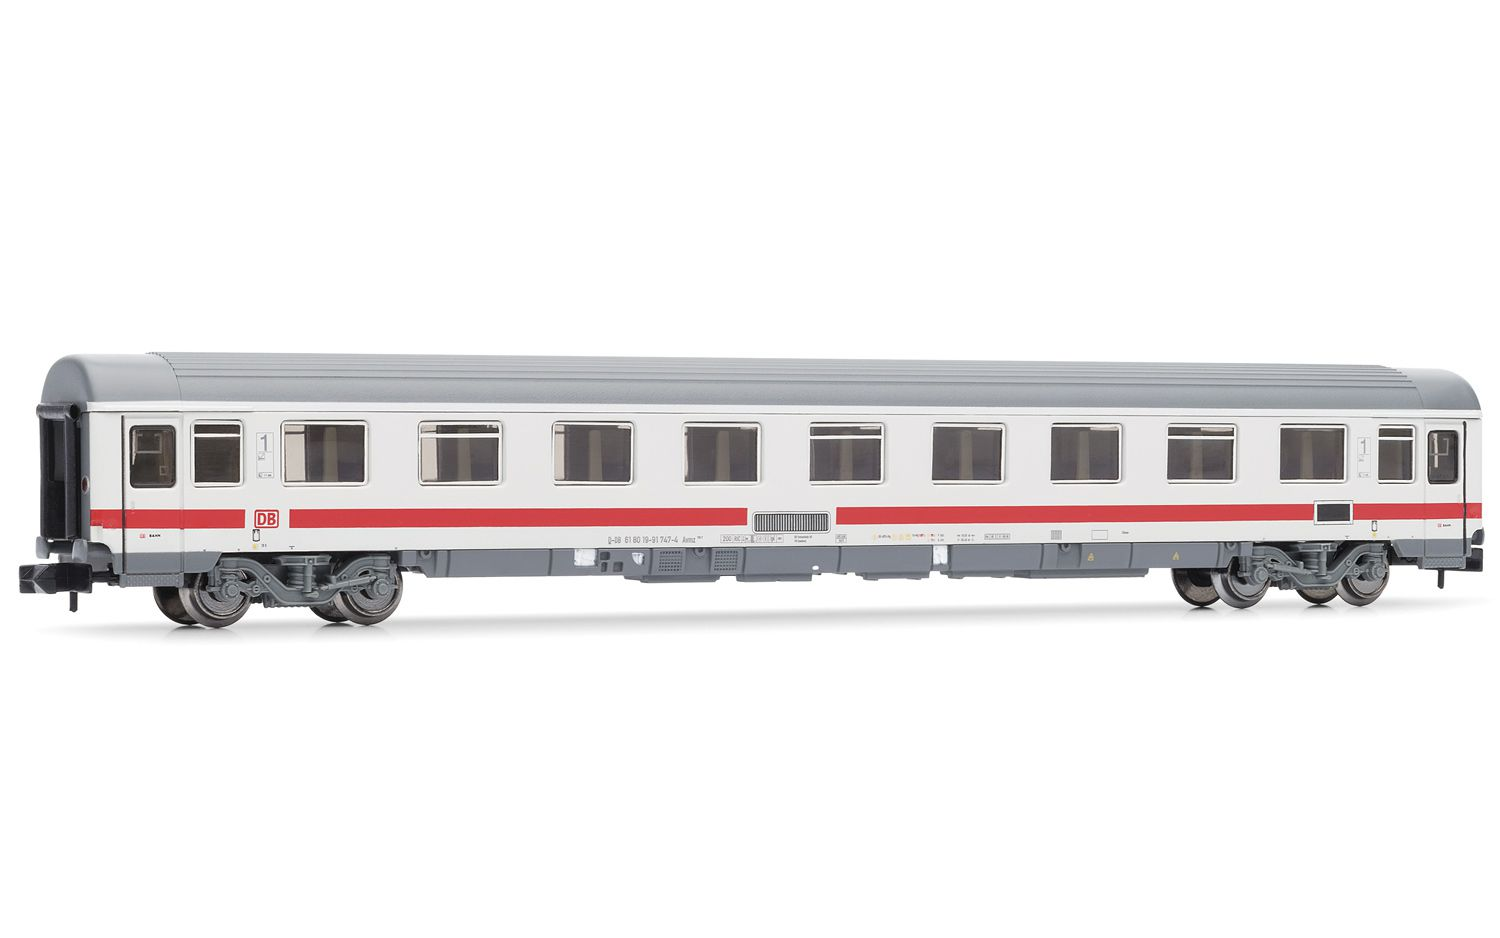 Picture Gallery for Arnold HN4120 1st class IC passenger coach of the